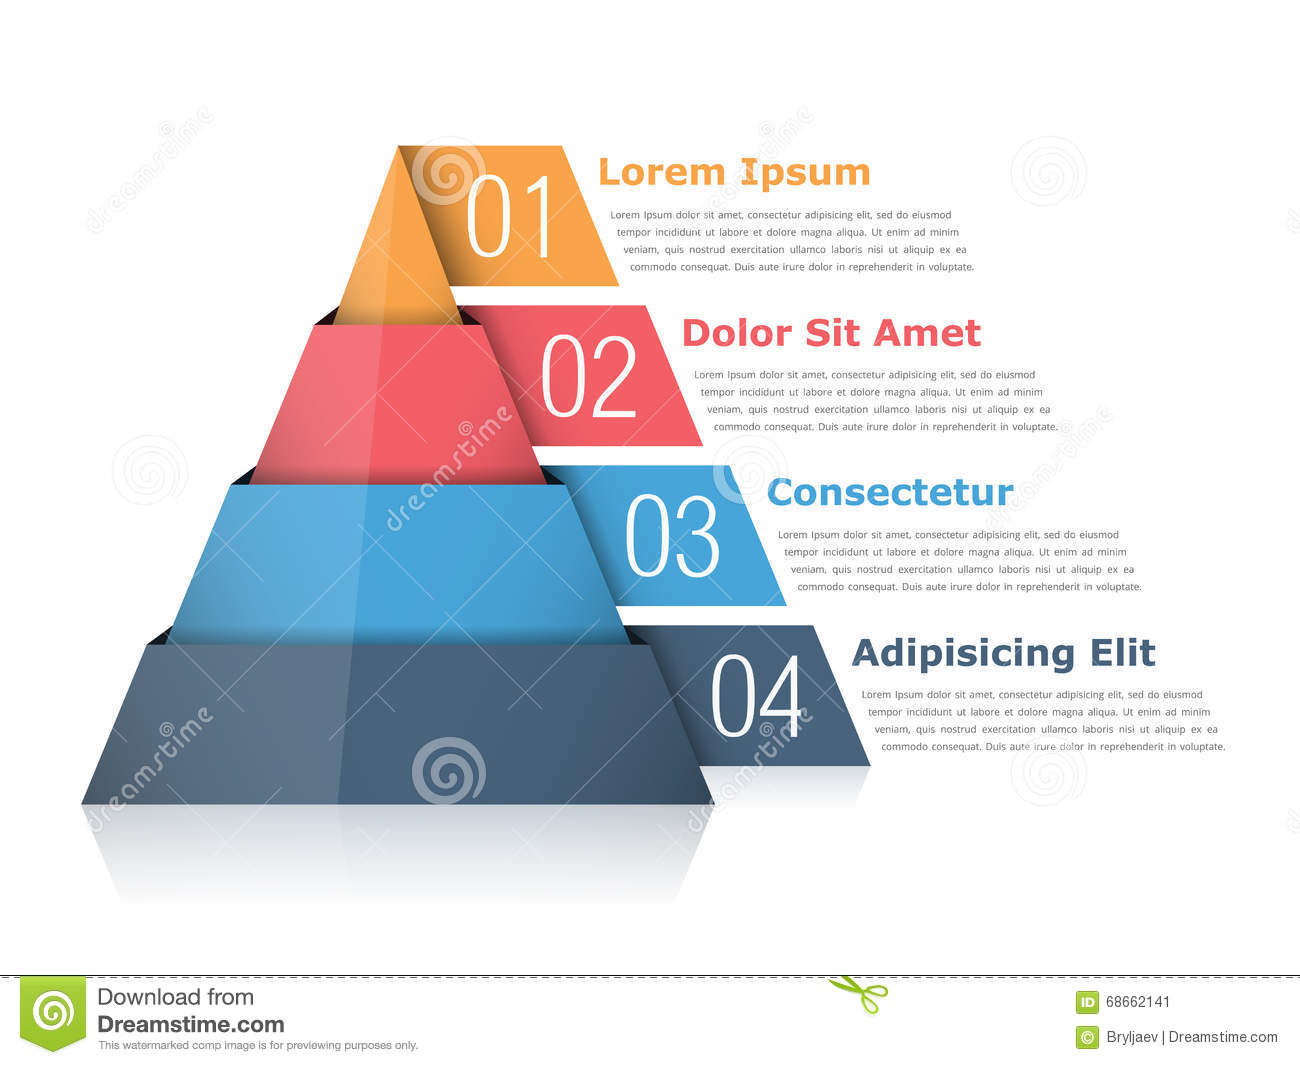 level 0 and 1 data flow diagram scosche line out converter wiring pyramid chart stock vector. image of graphic, background - 68662141